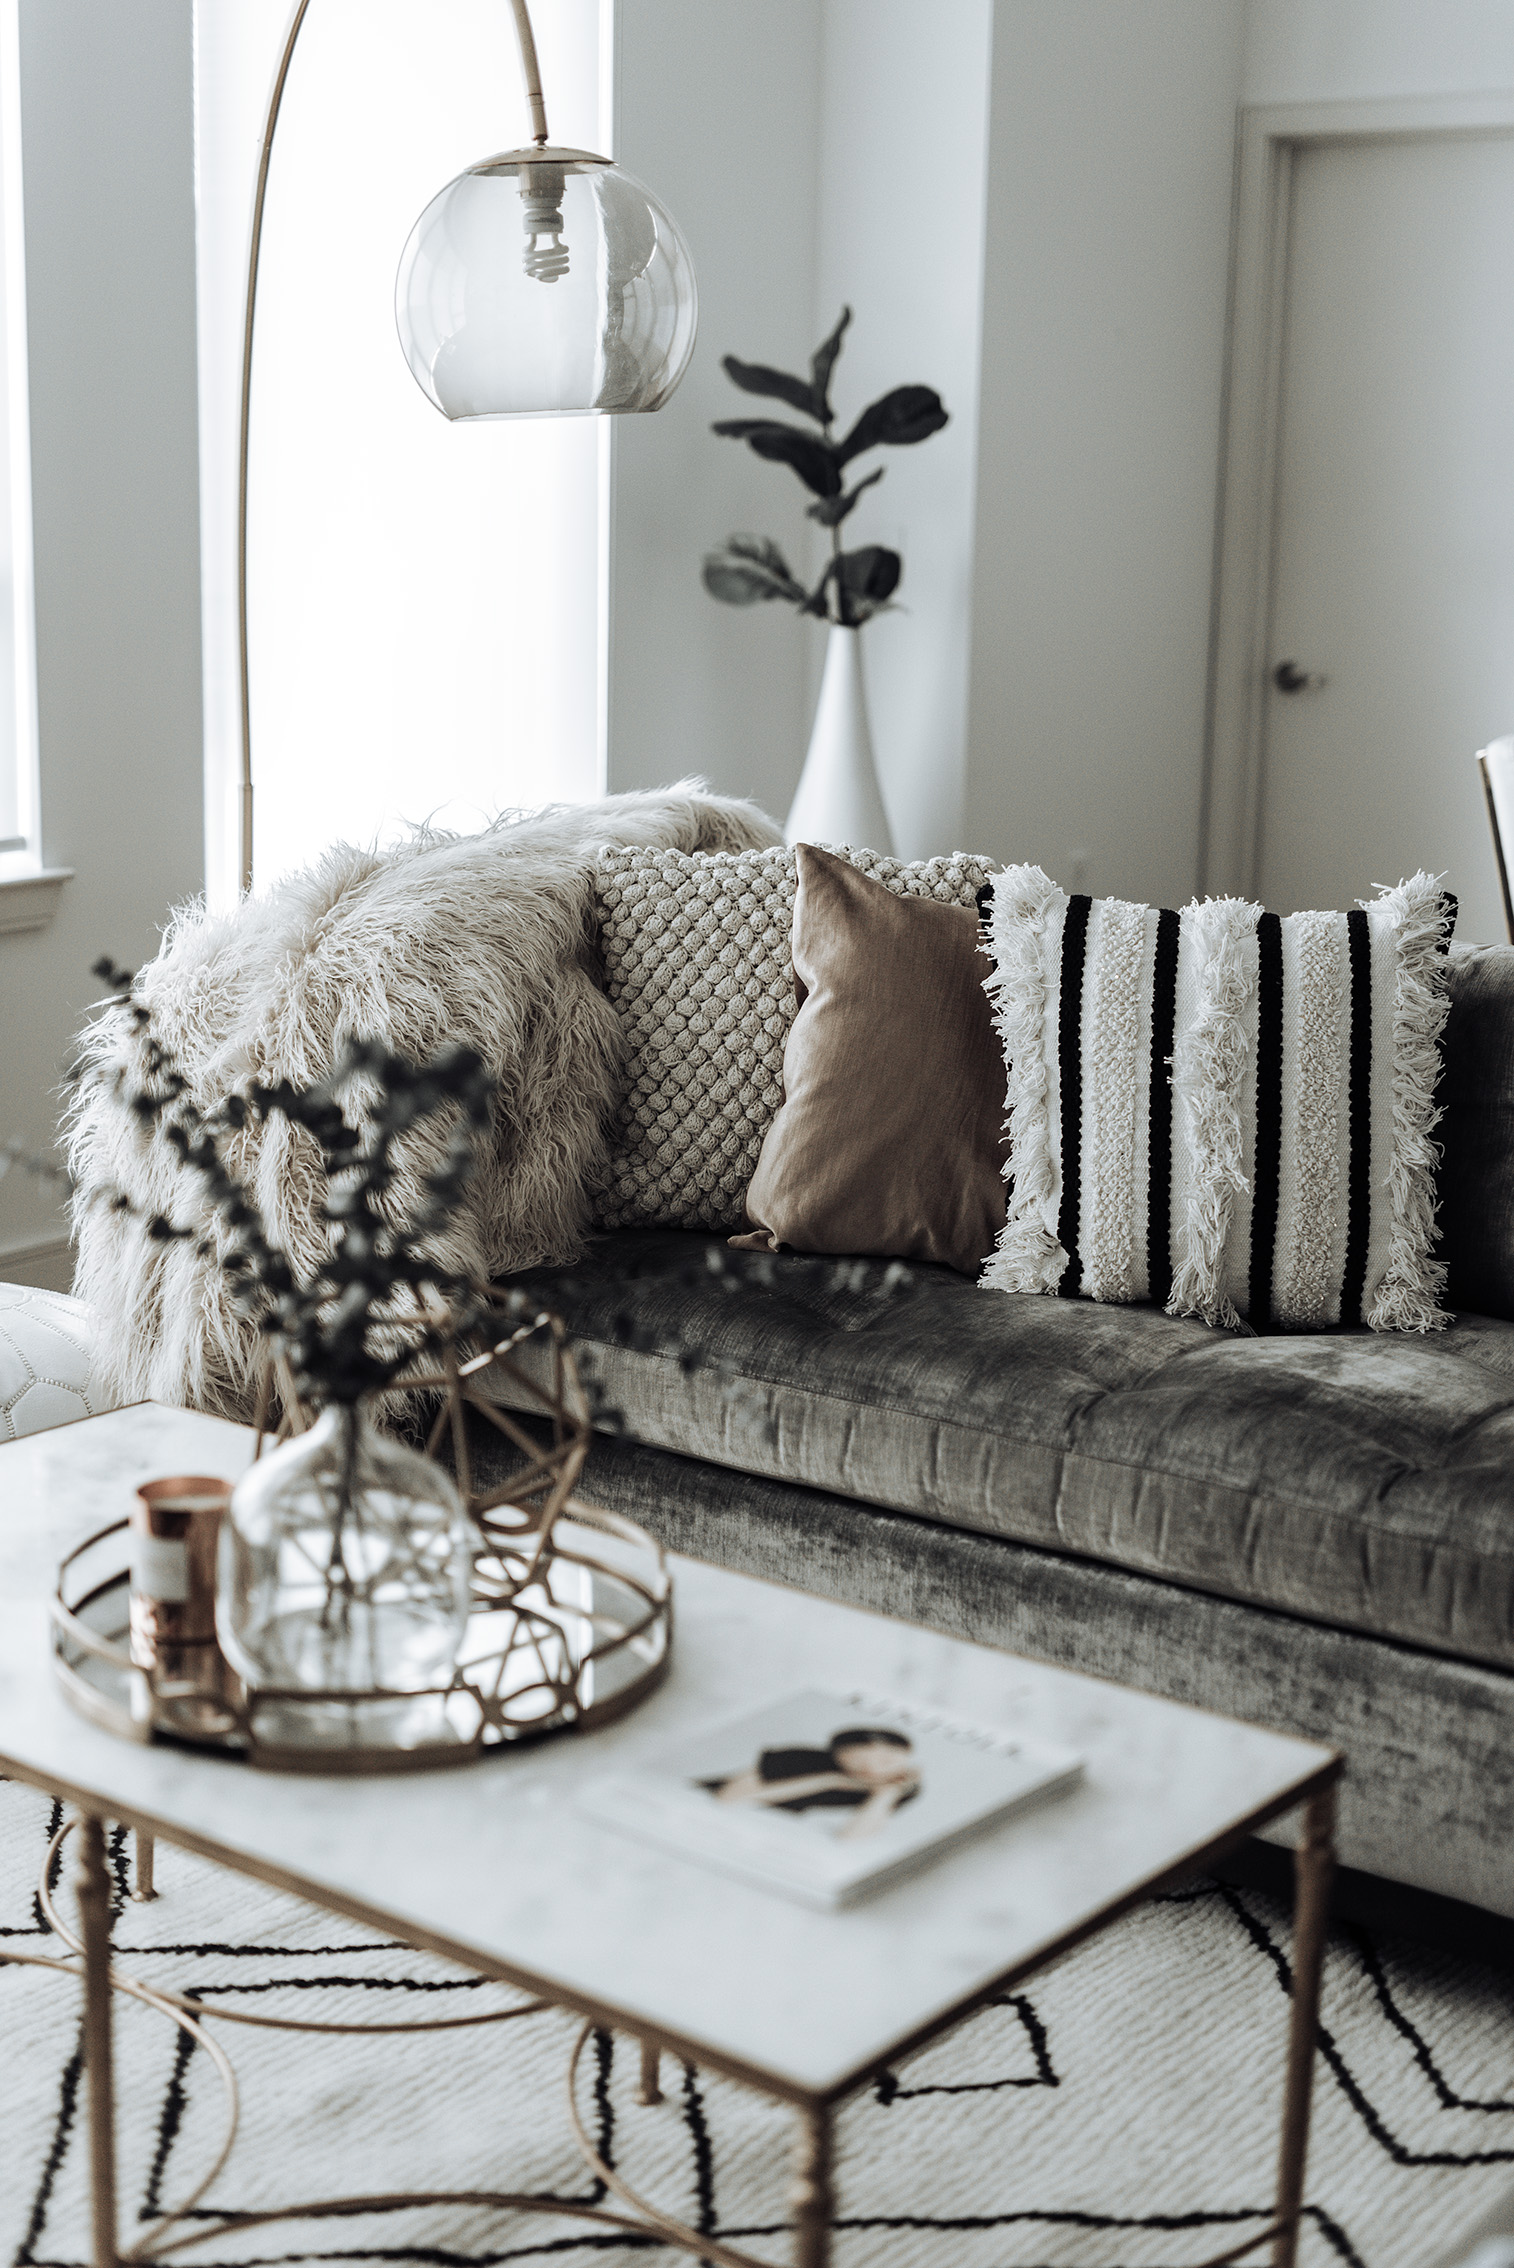 Click to shop | Family room update | Vega Moroccan Rug | Marble coffee table (similar) | White Leather Pouf Ottoman (on sale!)  | Textured Indra Pillow | Glass Vase | Blush Cotton Luster Velvet Pillow | | Marisa Throw Blanket | Pompom Pillow | Overarching Lamp